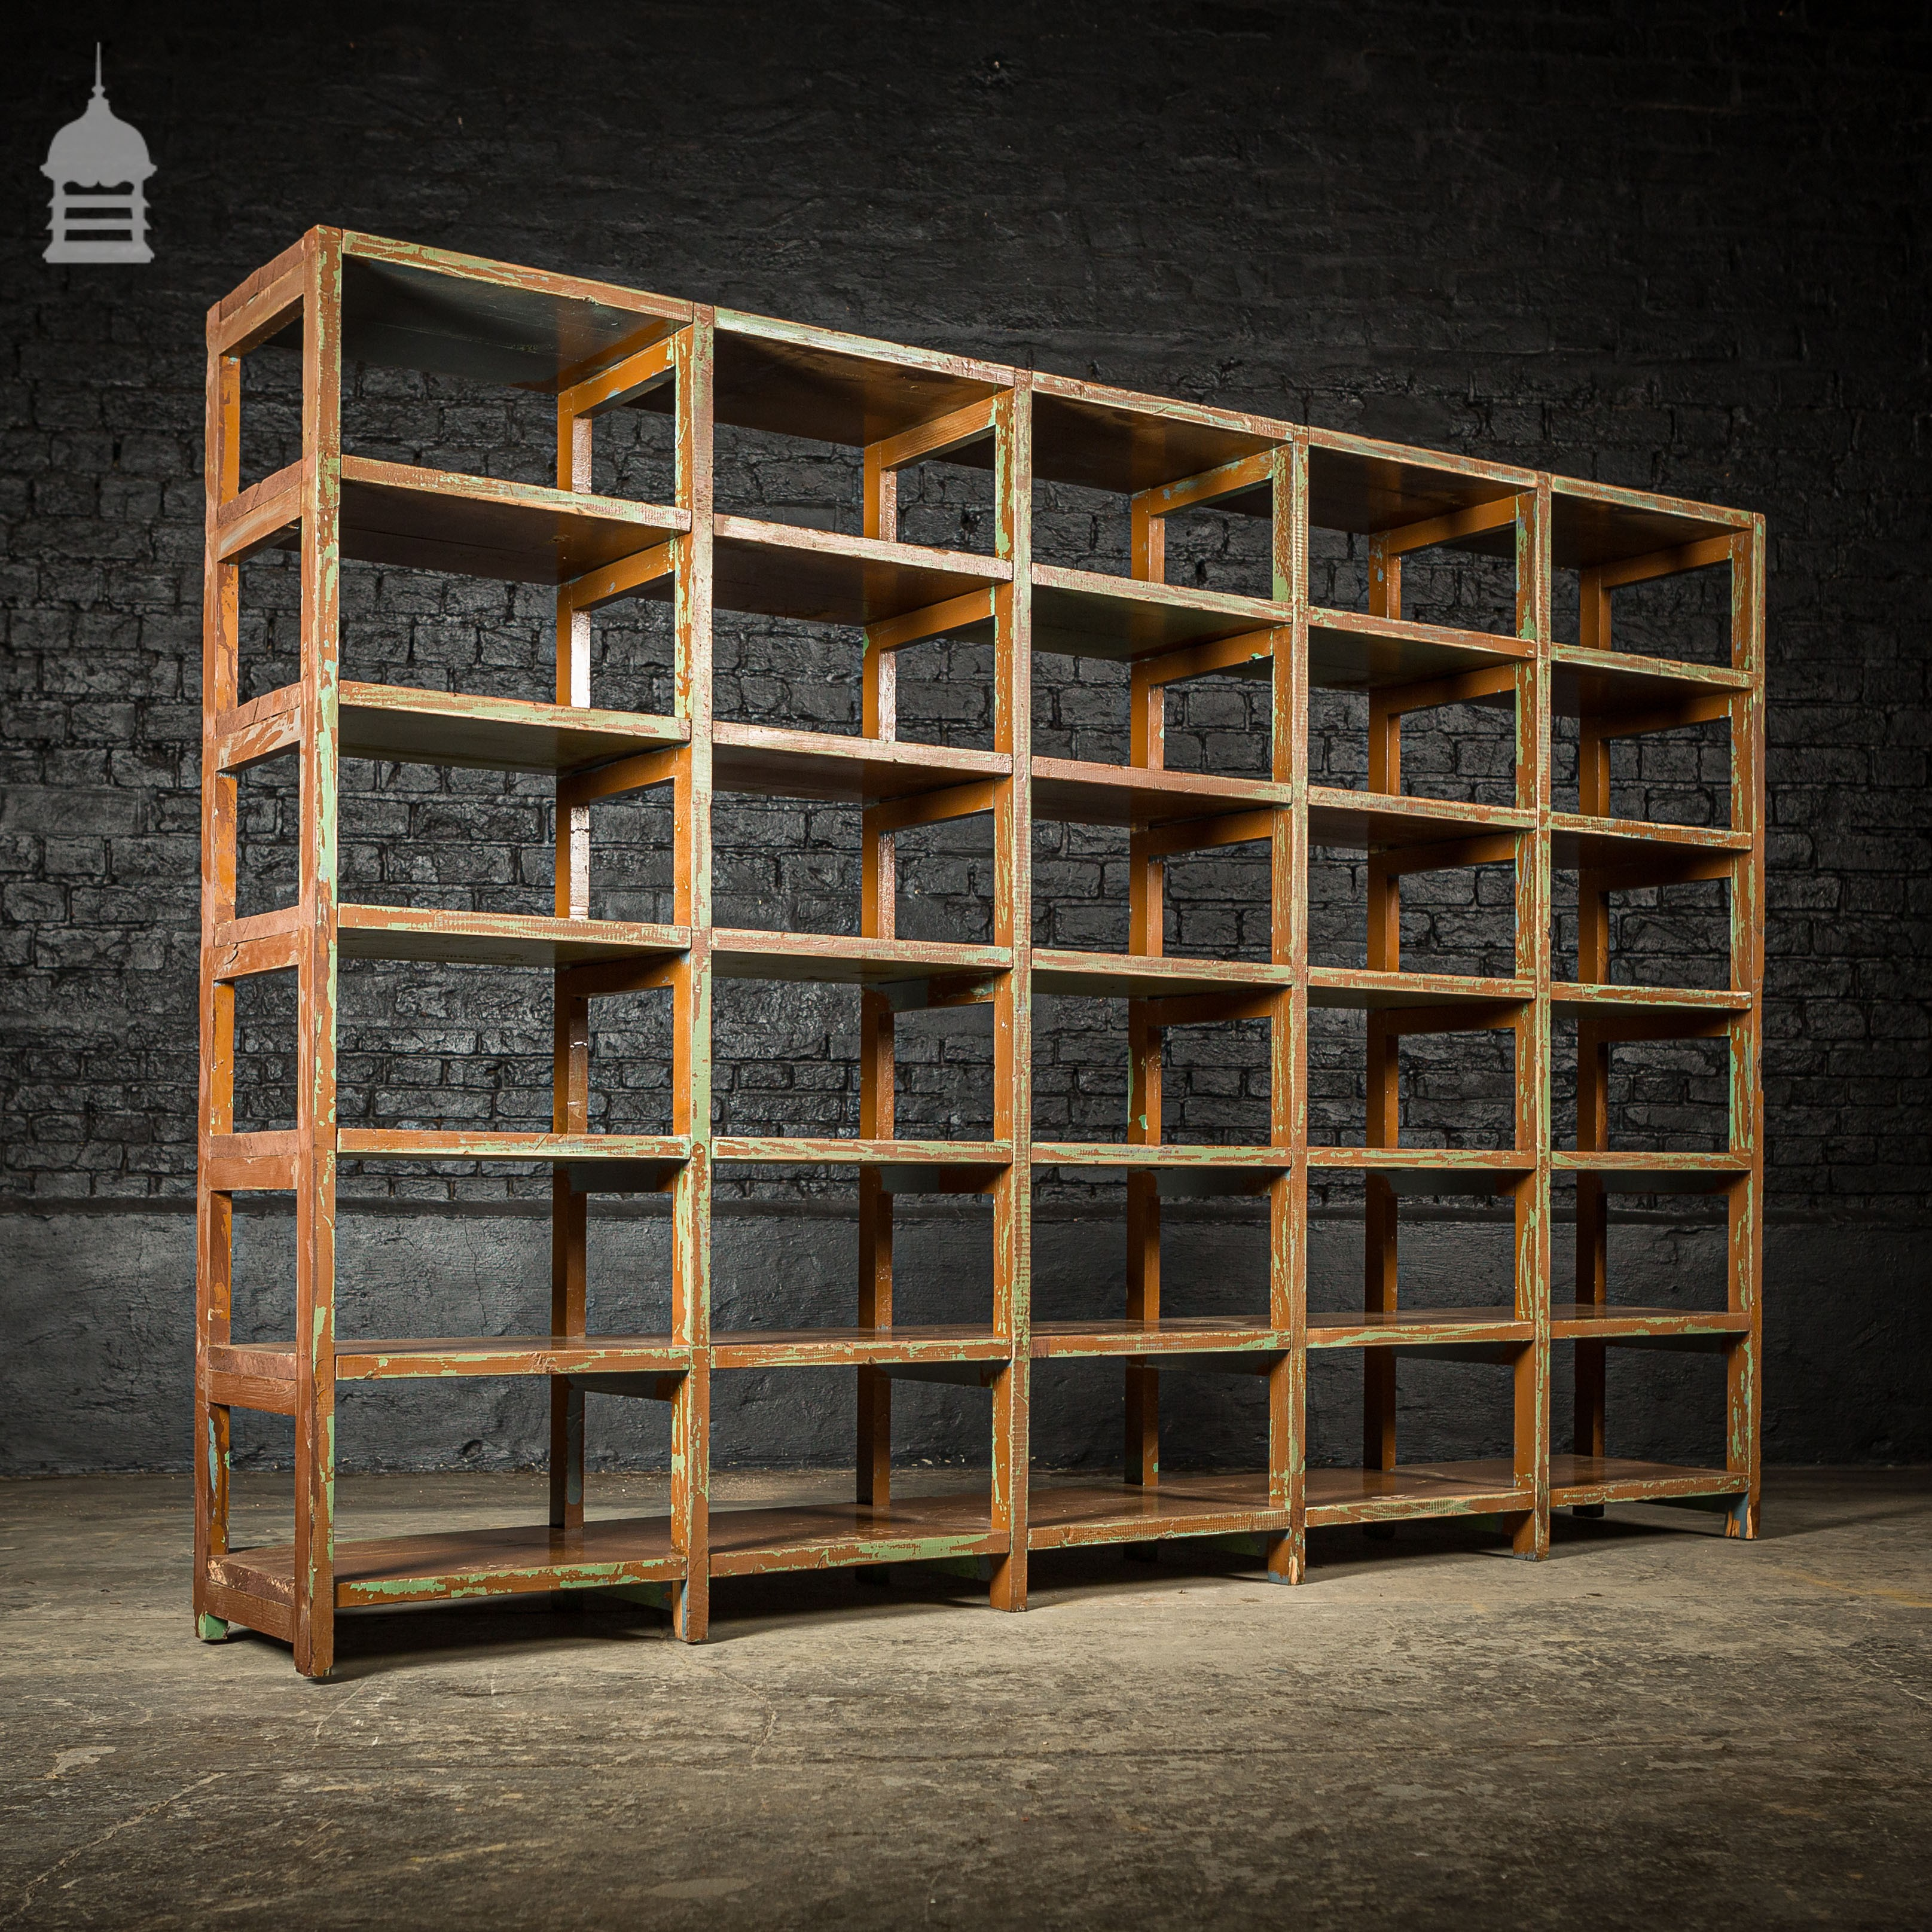 Large Early 20th C Industrial Shelving Unit with Numbered Shelves ...